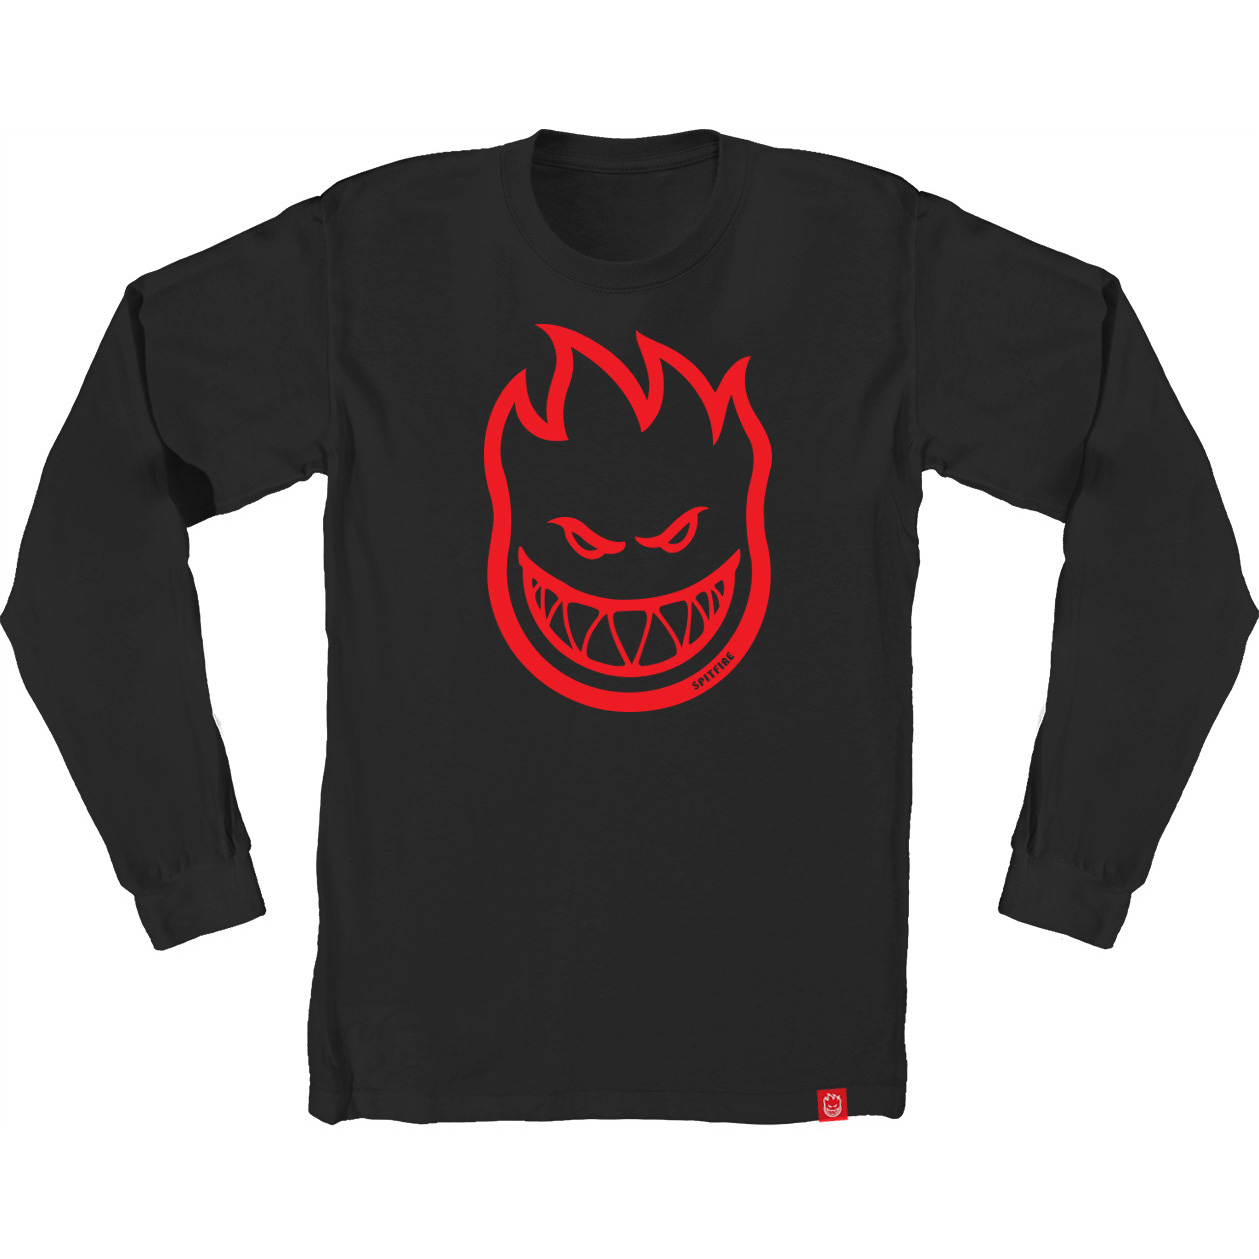 SF LS TEE BIGHEAD BLK/RED S - Click to enlarge